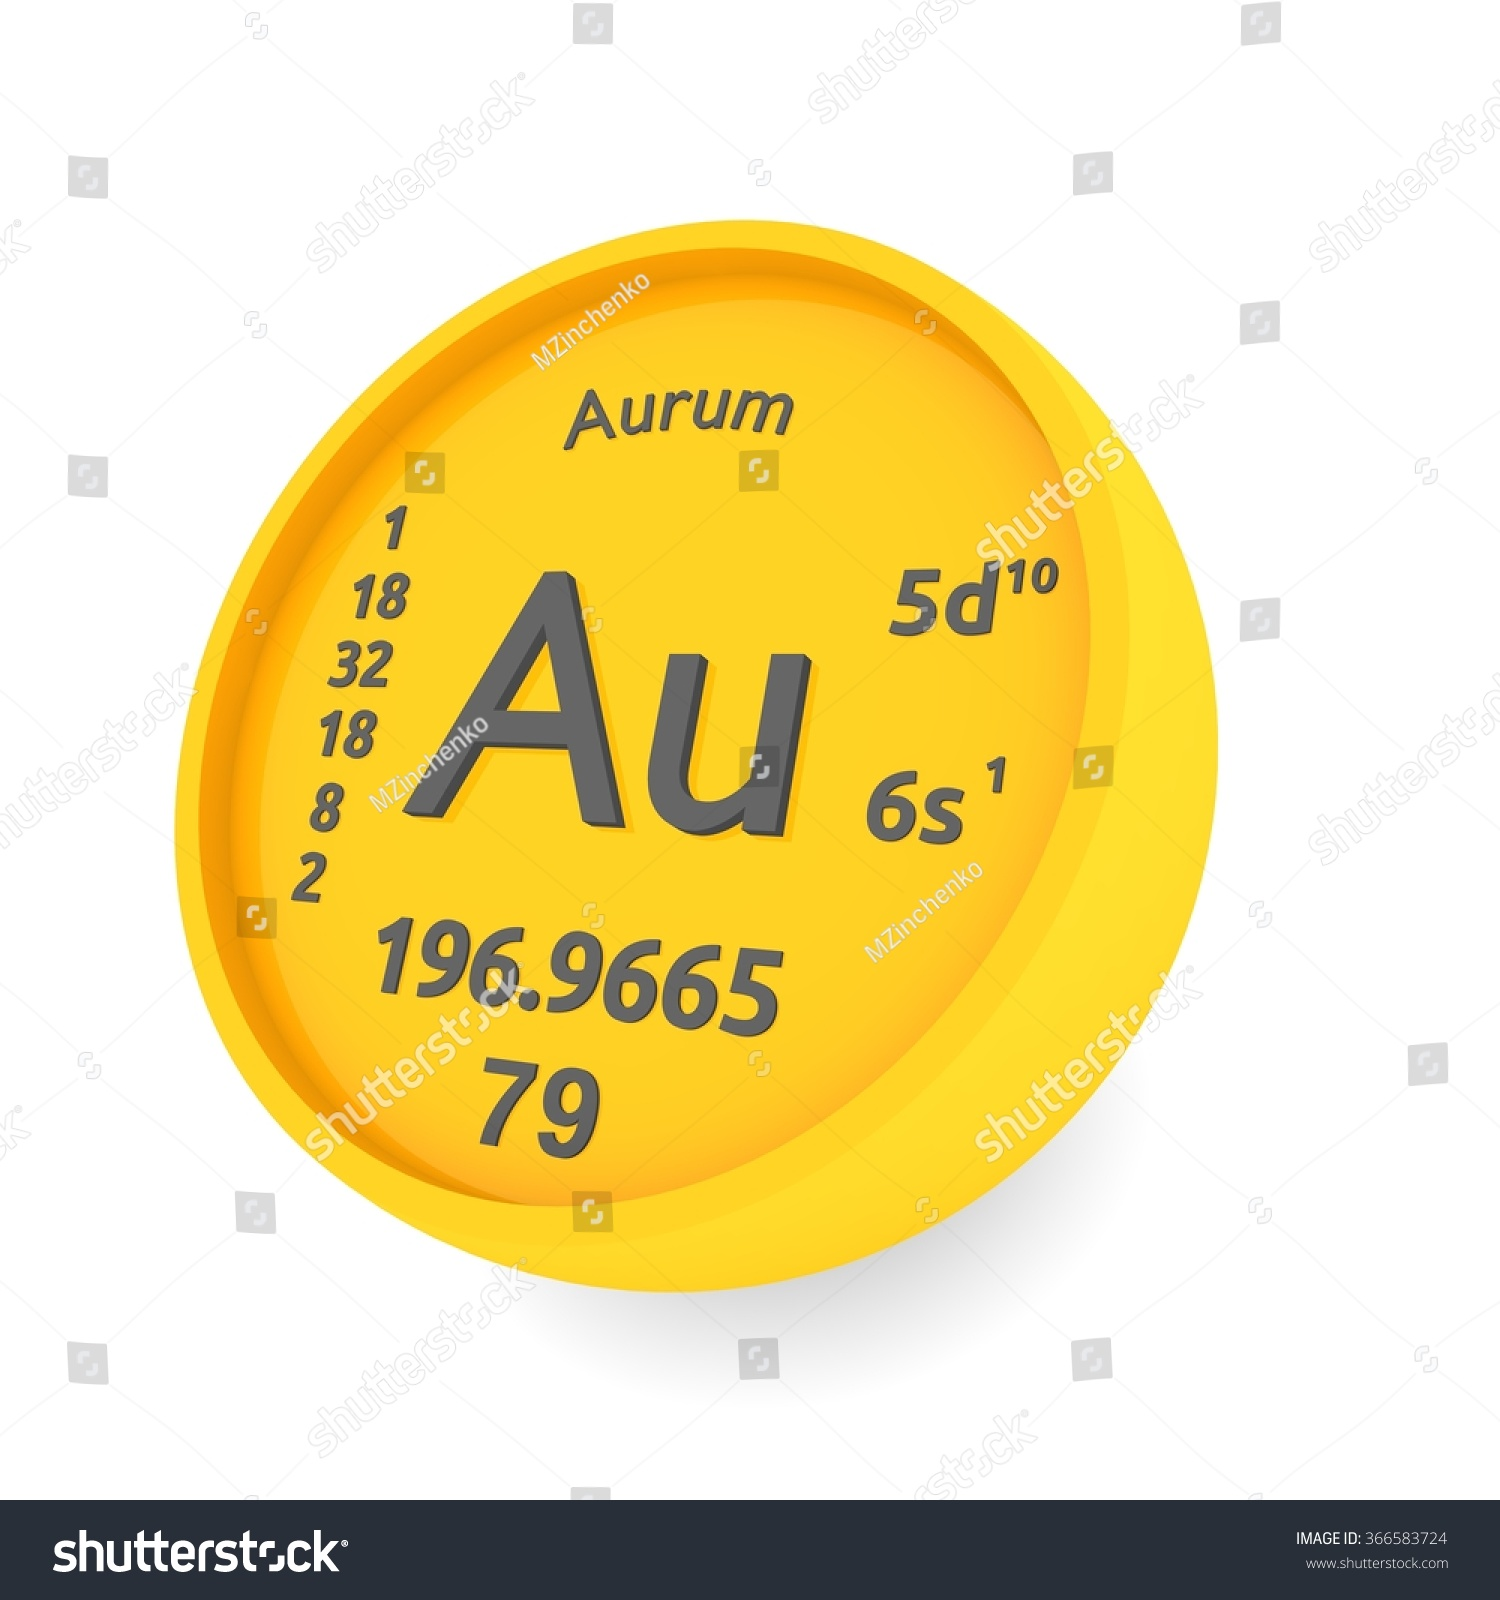 Aurum gold chemical element sign periodic stock illustration aurum or gold chemical element sign in periodic table gamestrikefo Image collections